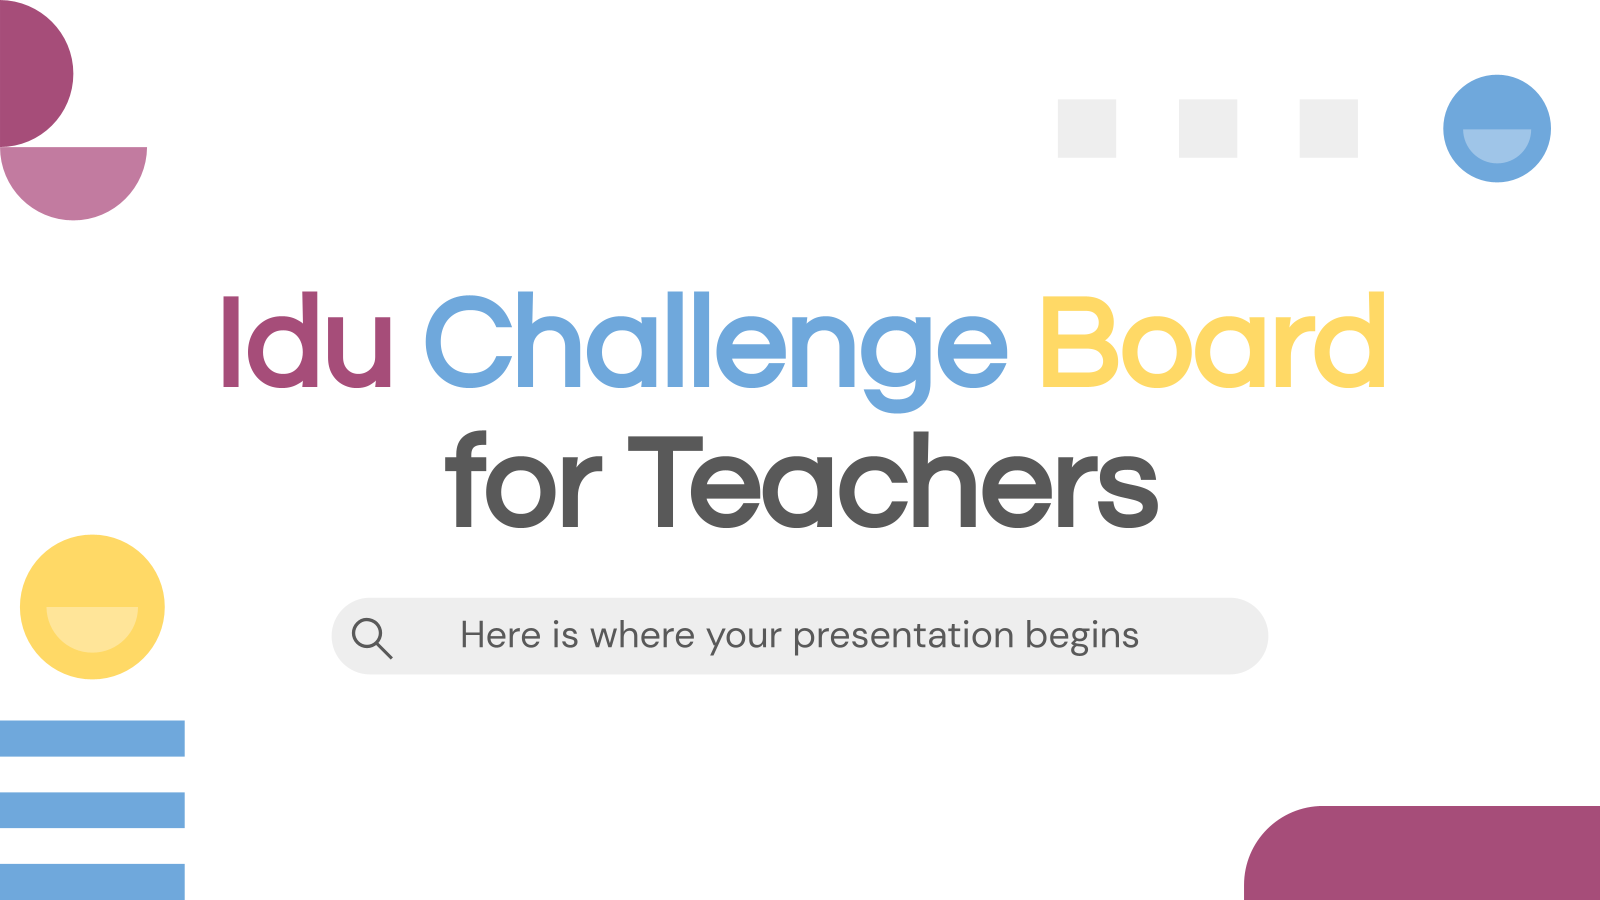 Idu Challenge Board for Teachers presentation template